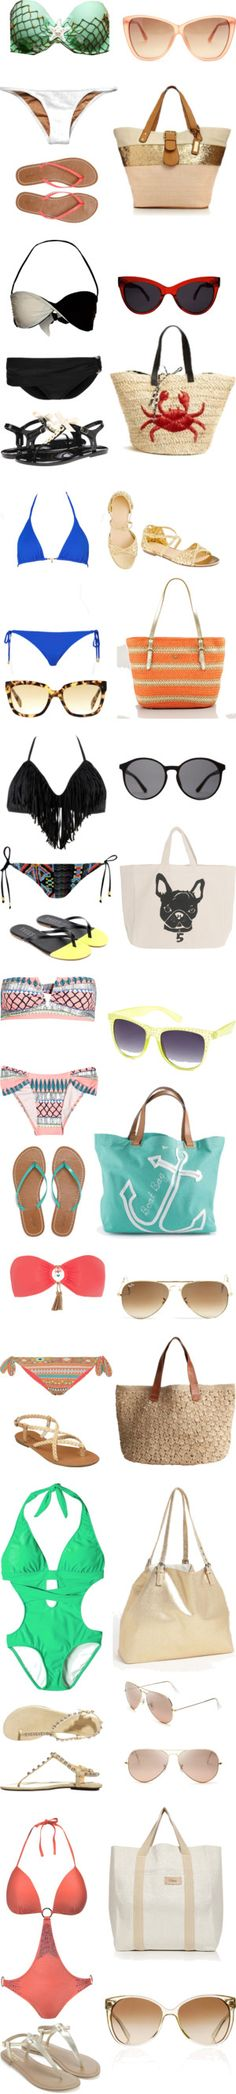 """""""Ready for the Beach"""" by maggie-carman on Polyvore"""